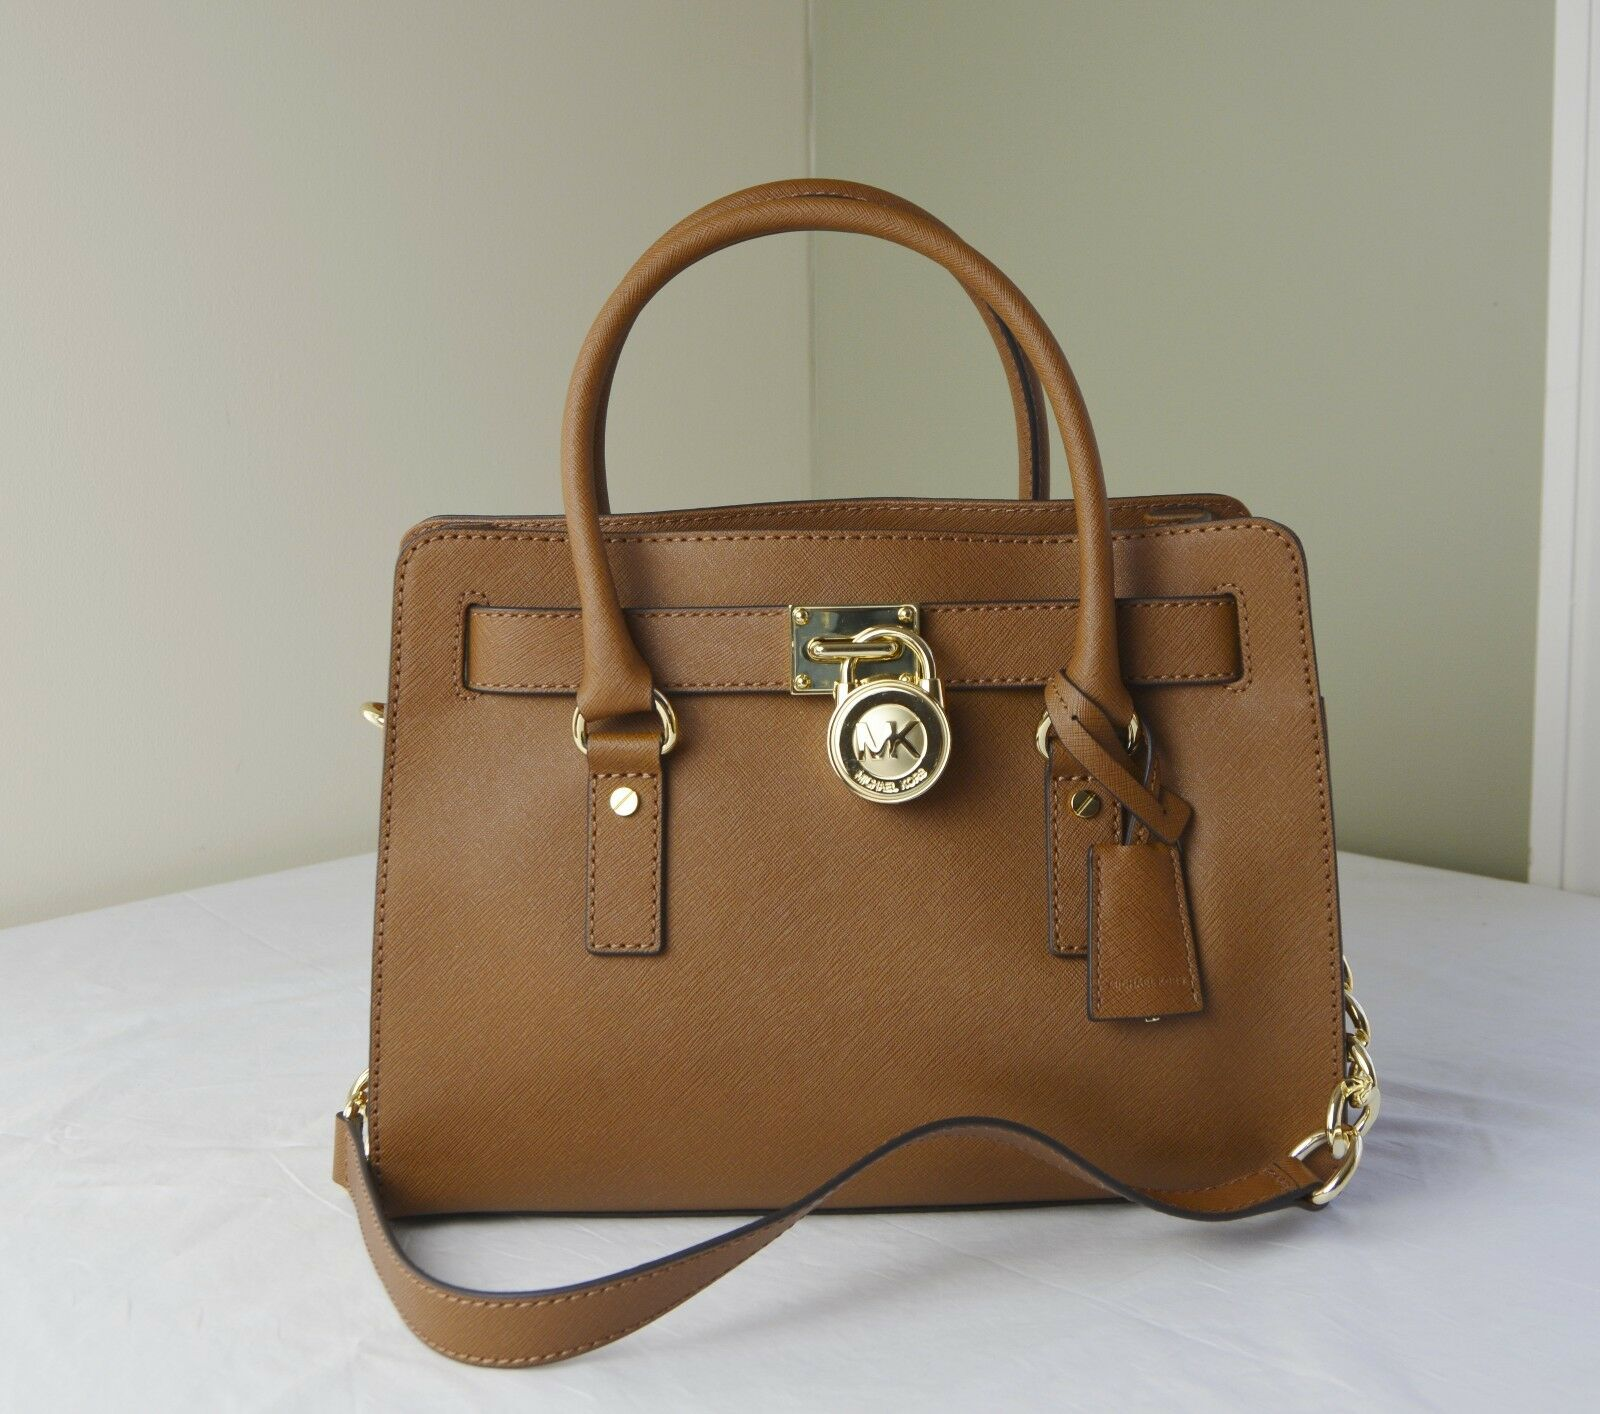 Michael Kors - Michael Kors Hamilton EW Satchel Luggage Saffiano Leather With Gold Hardware